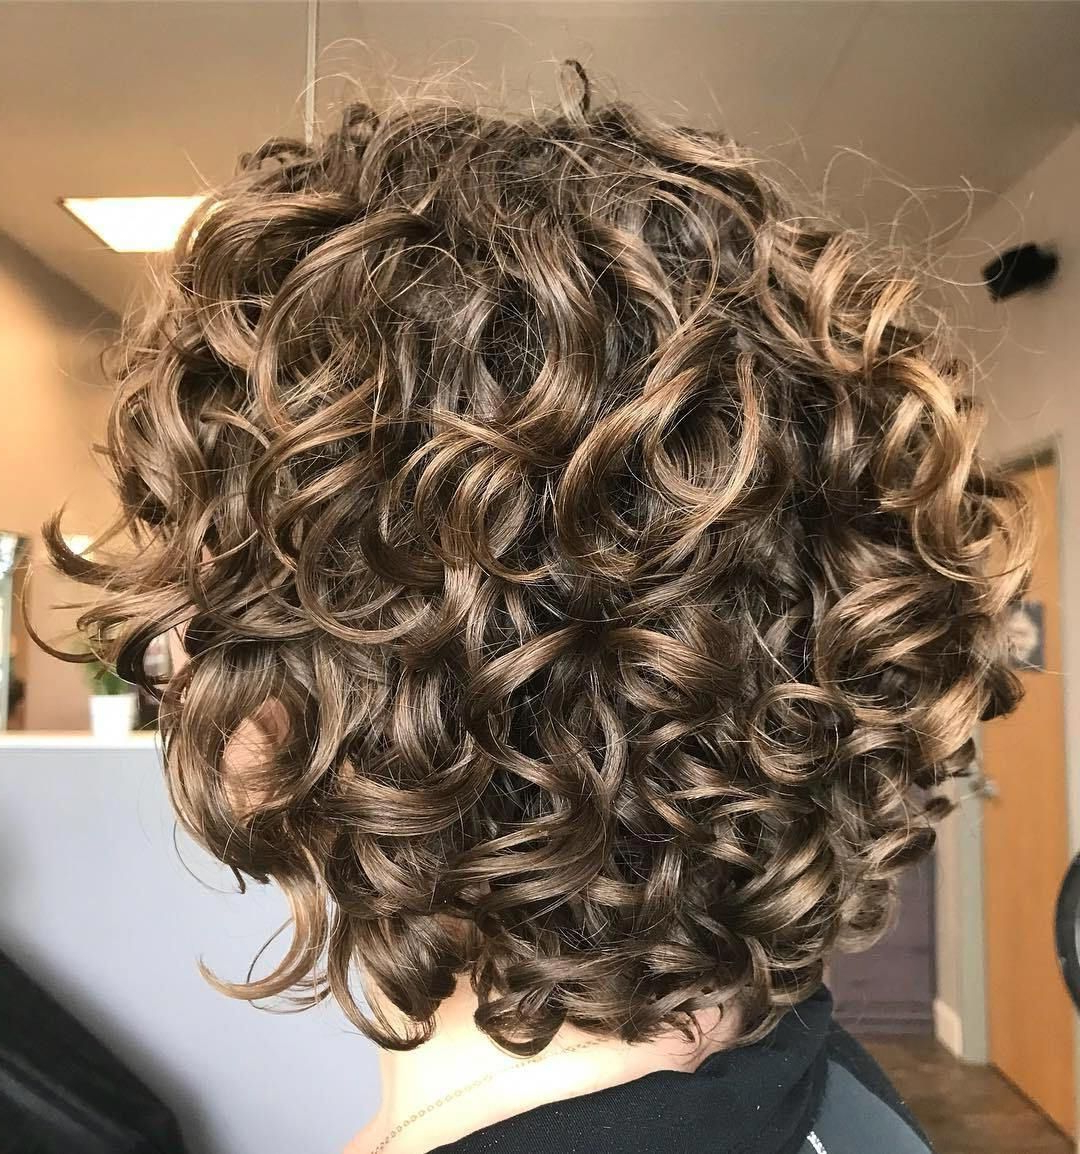 Dark Blonde Short Curly Hairstyle #naturalhairstyles | Natural With Playful Blonde Curls Hairstyles (View 9 of 20)